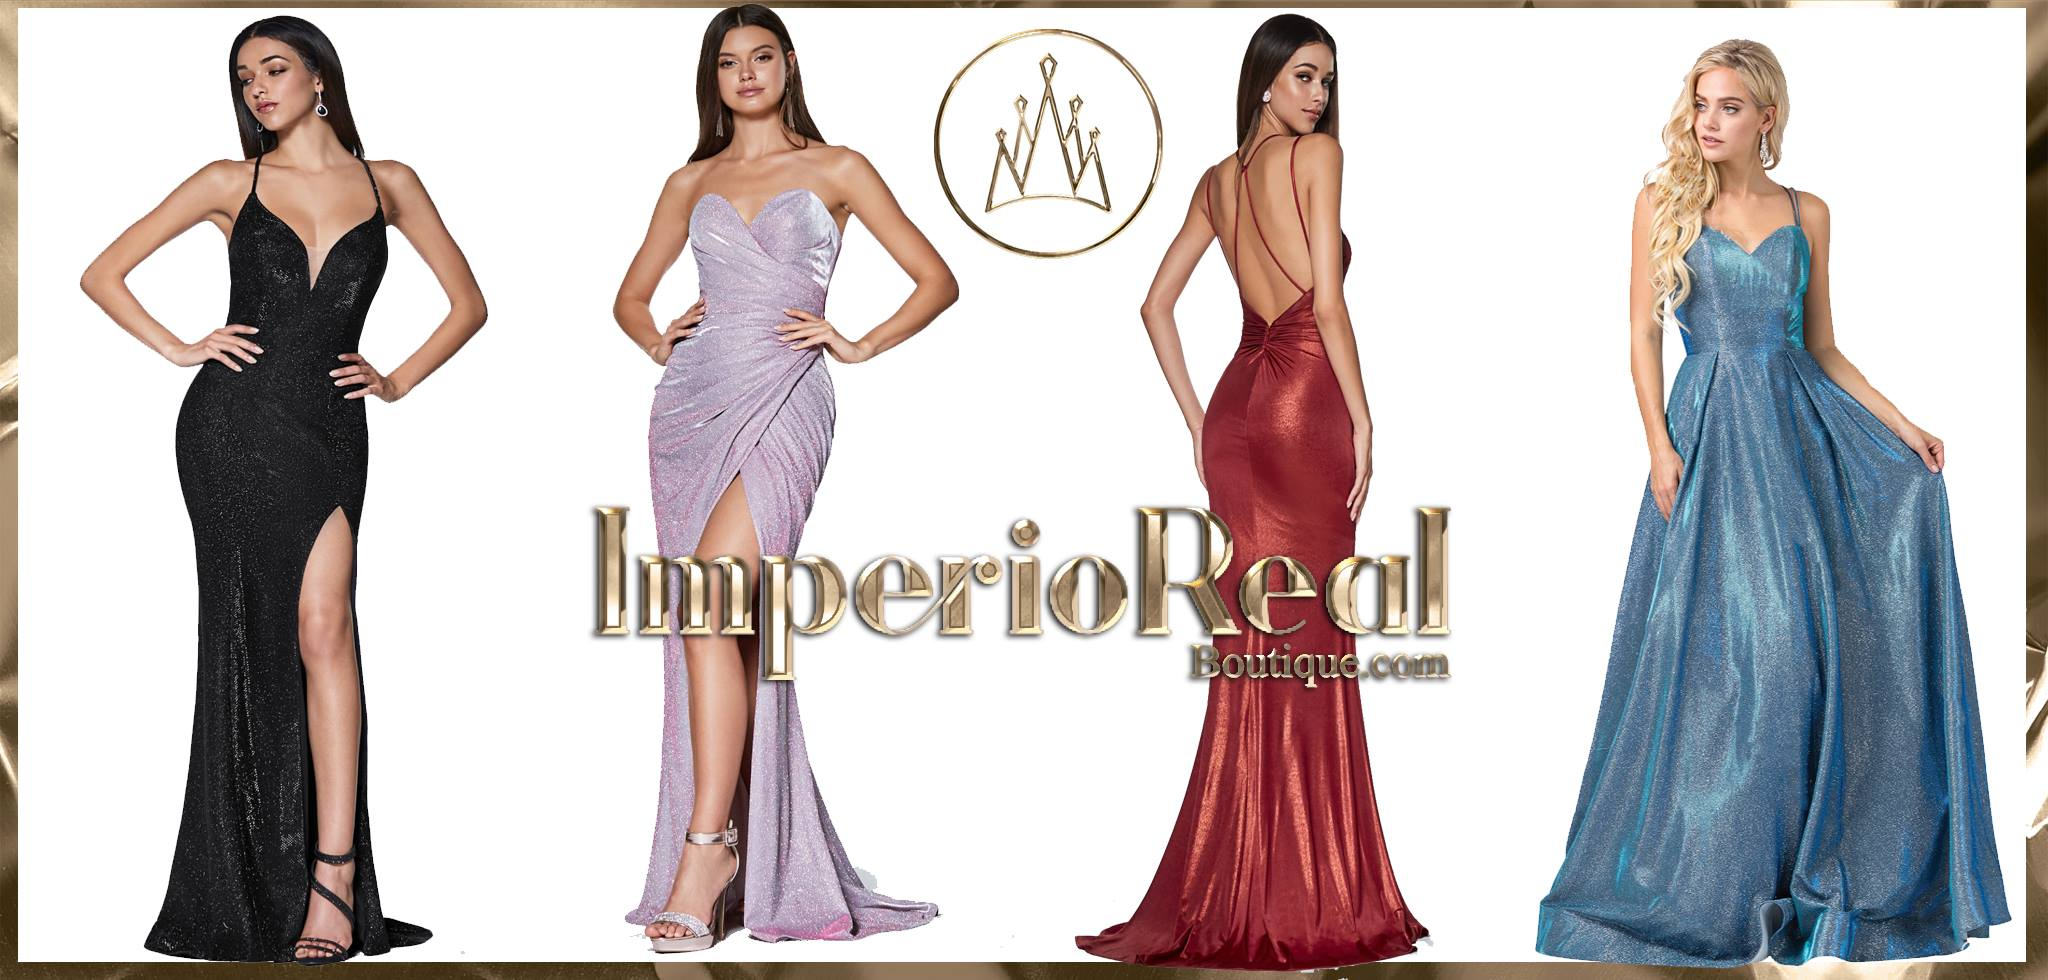 Imperio Real Boutique